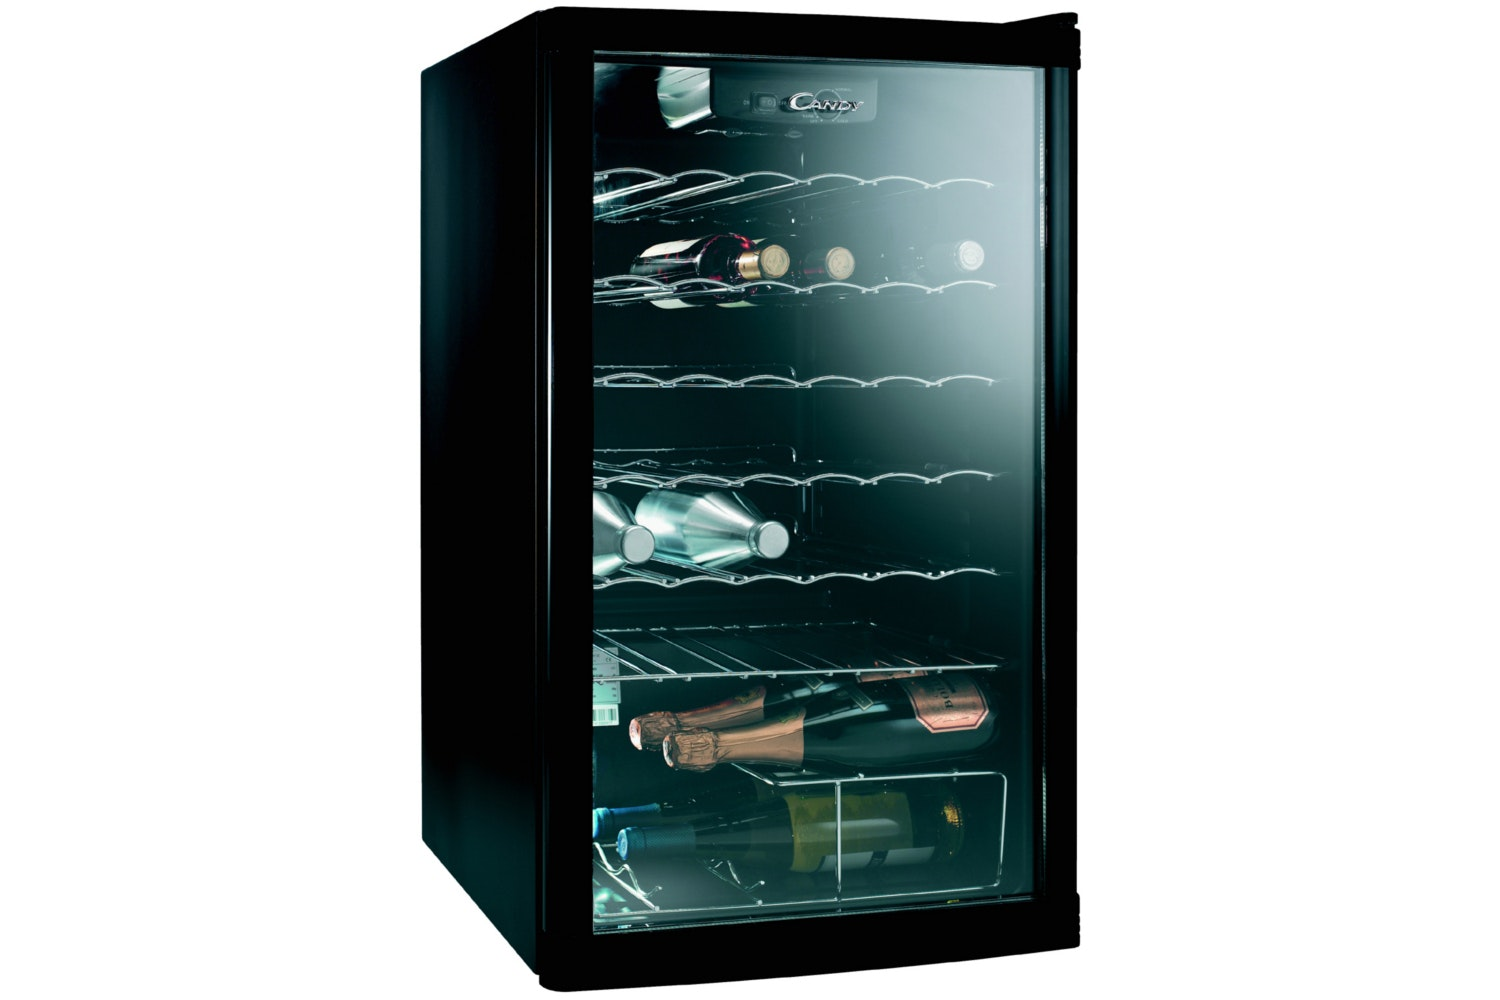 Candy 40 Bottle Wine Cooler | CCV150B